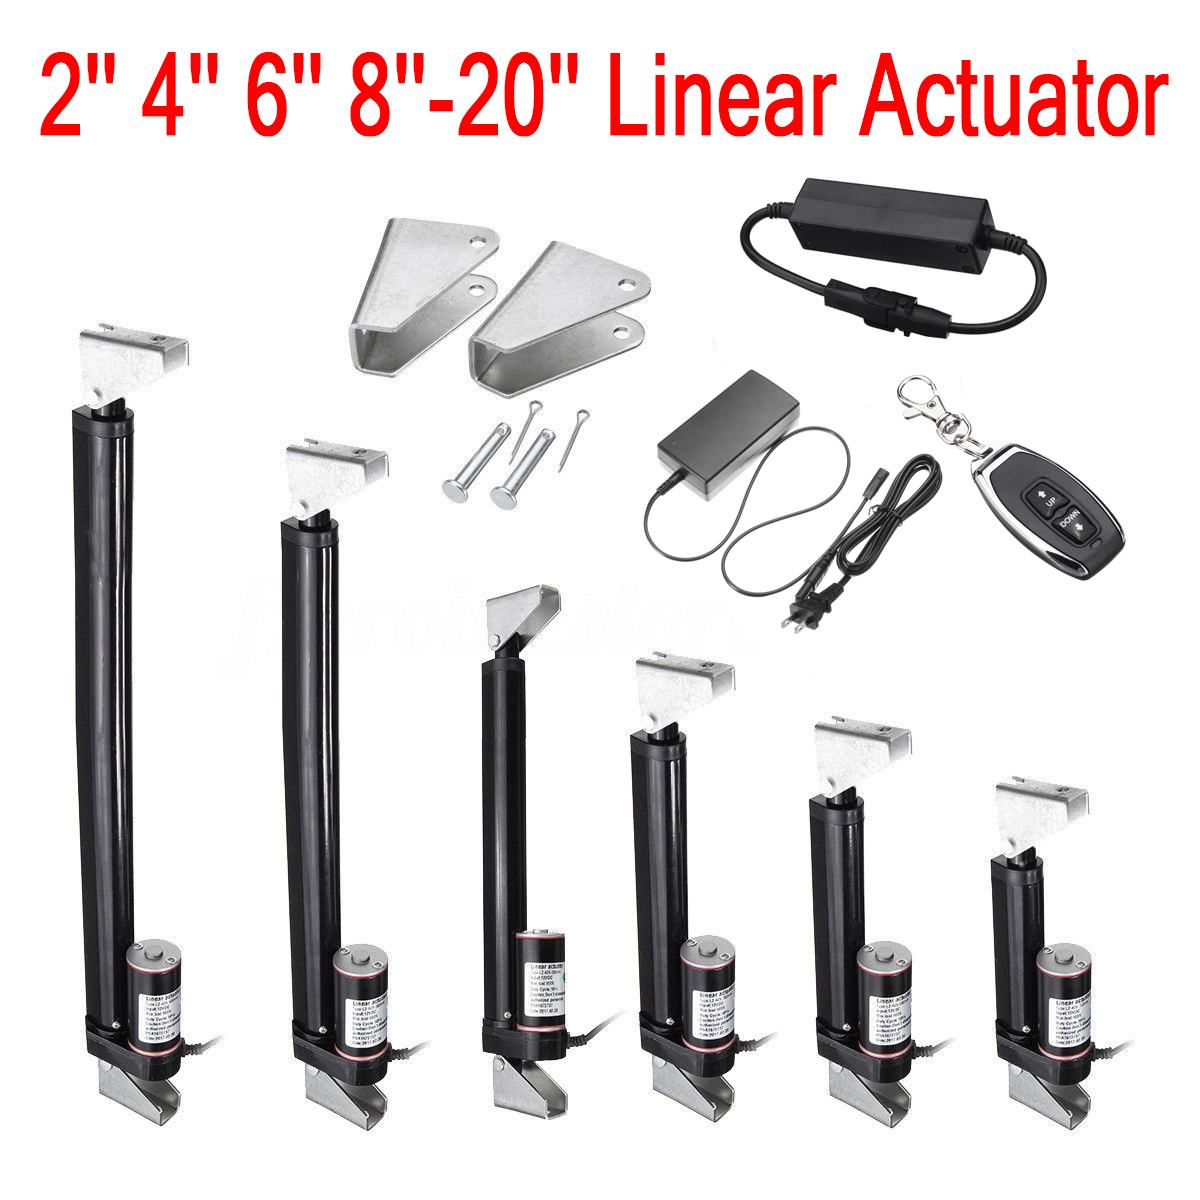 Tonysa Linear Actuator DC 12V Linear Actuator 80KG Max Lift 50mm Stroke Electric Motor with Built-in Stroke Switch for Medical Auto Car